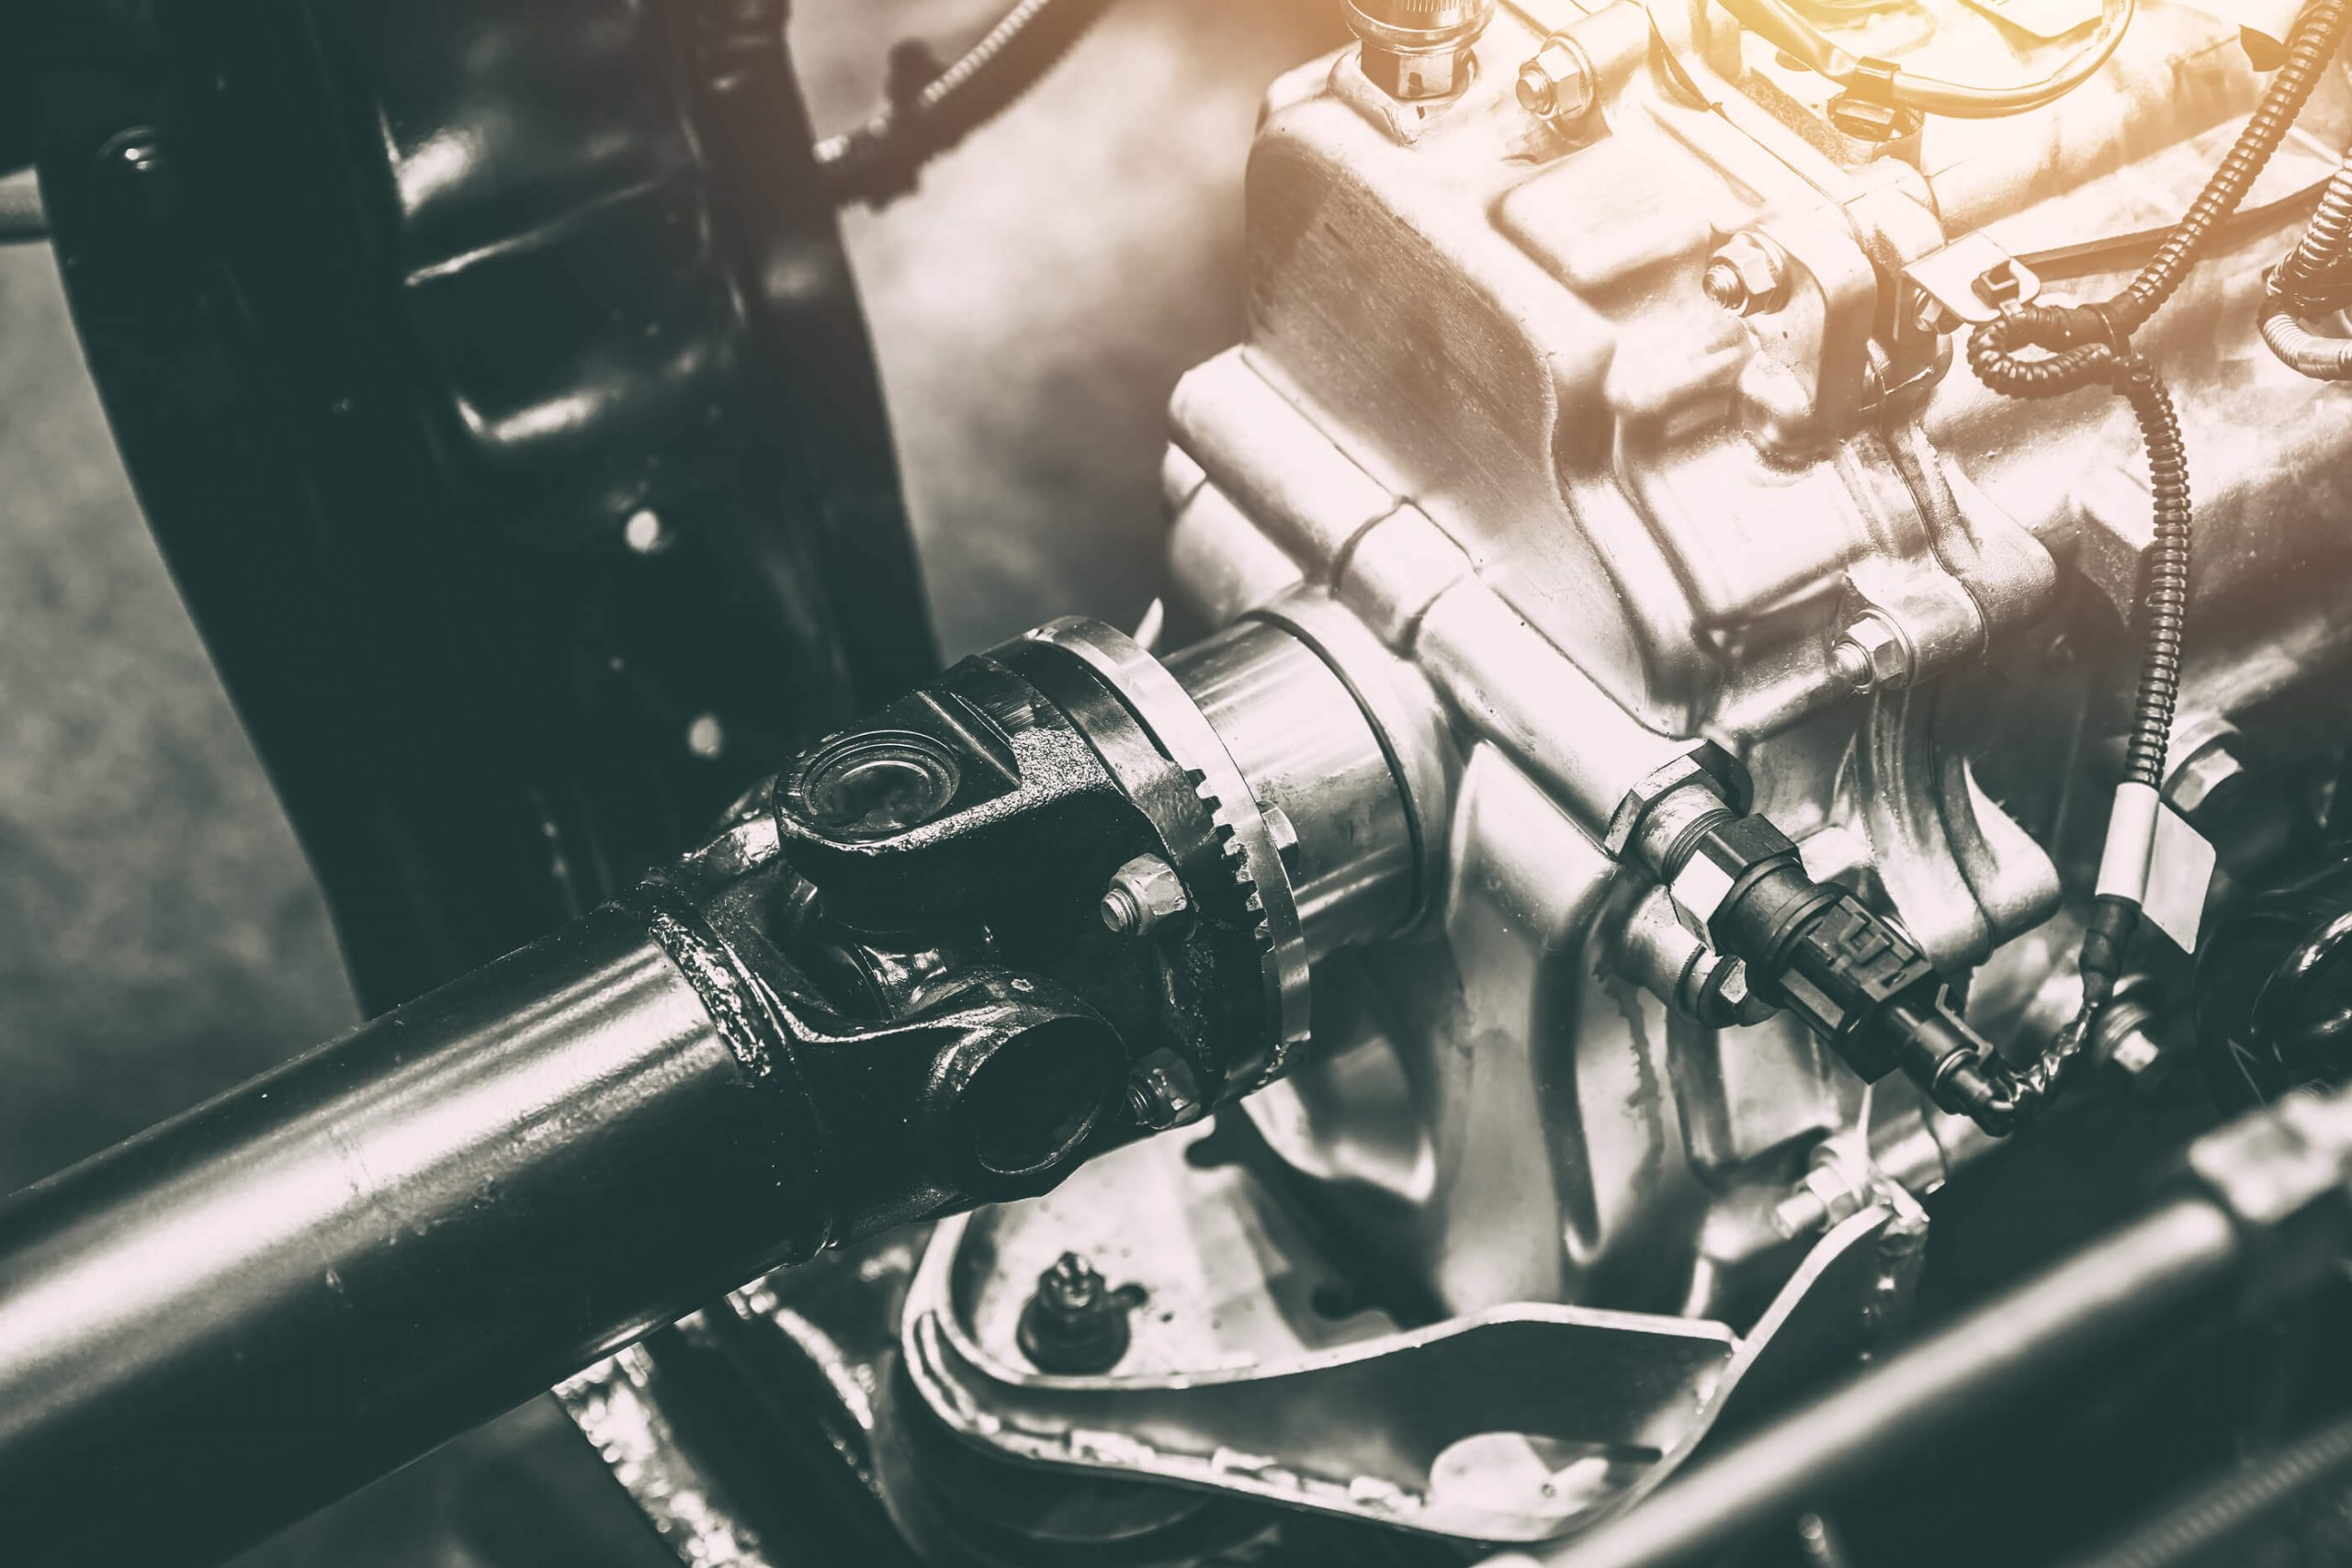 Angel's Transmission and Auto Repair - Mission Viejo - Trusted Transmission Repair Shop-Vehicle-Shaft-Axle-Of-Power-Transmission